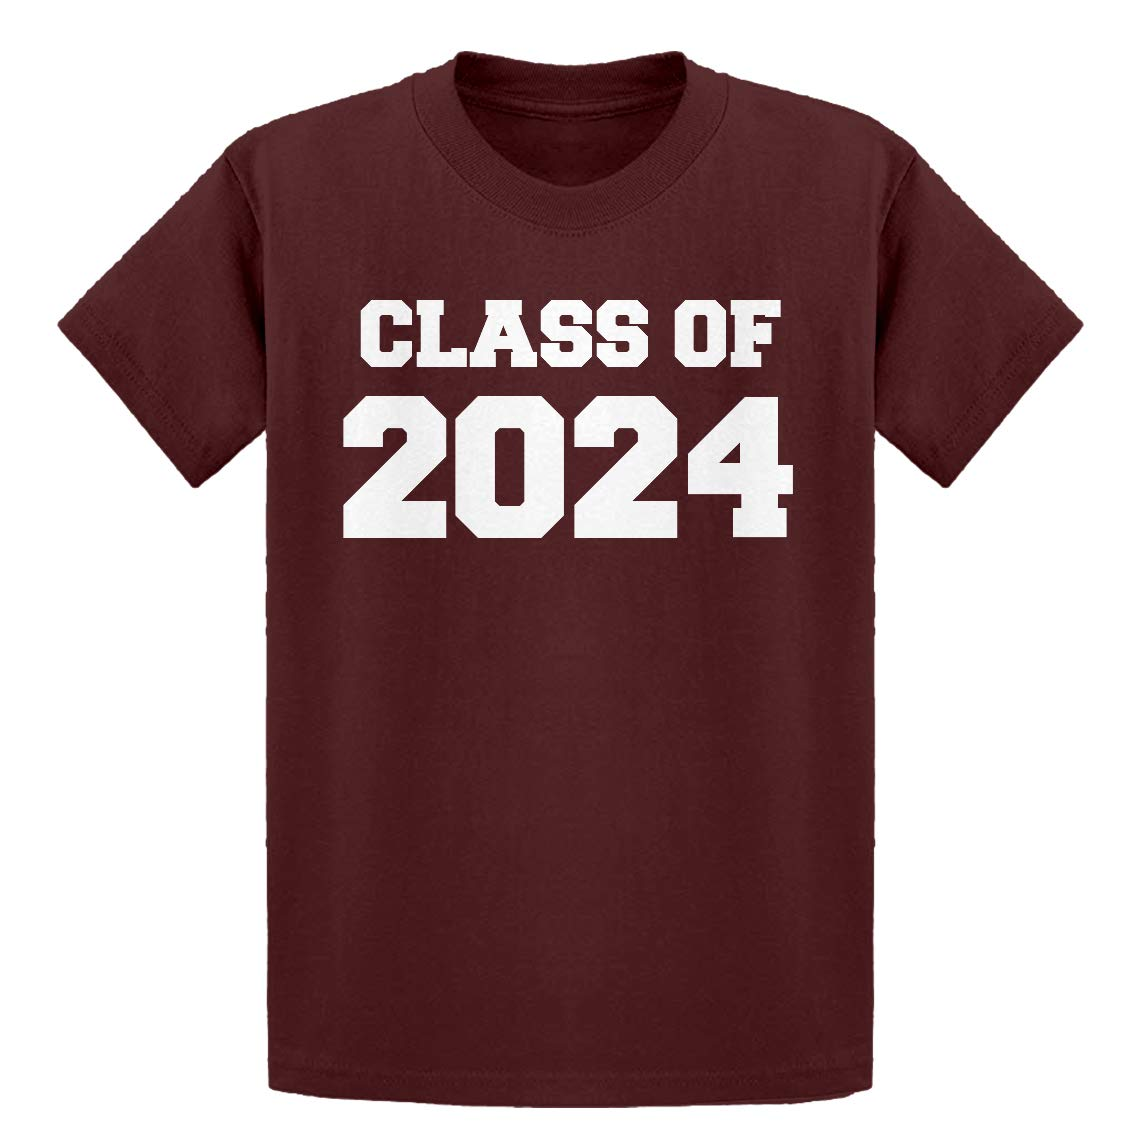 Indica Plateau Youth Class of 2024 Kids T-Shirt